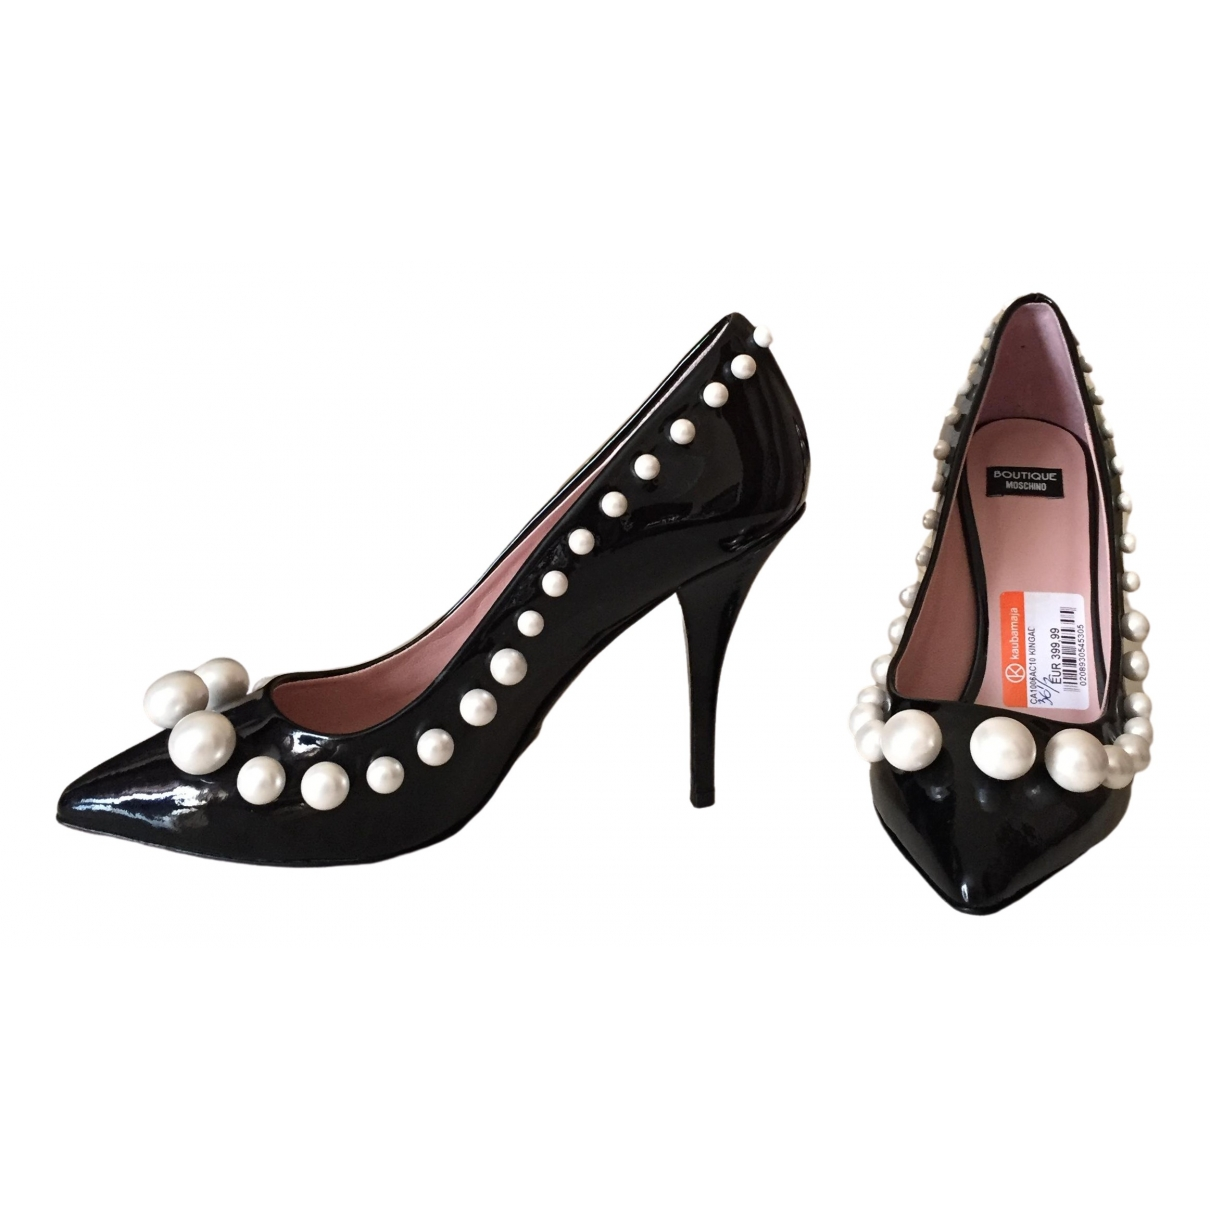 Moschino \N Black Leather Heels for Women 36.5 IT